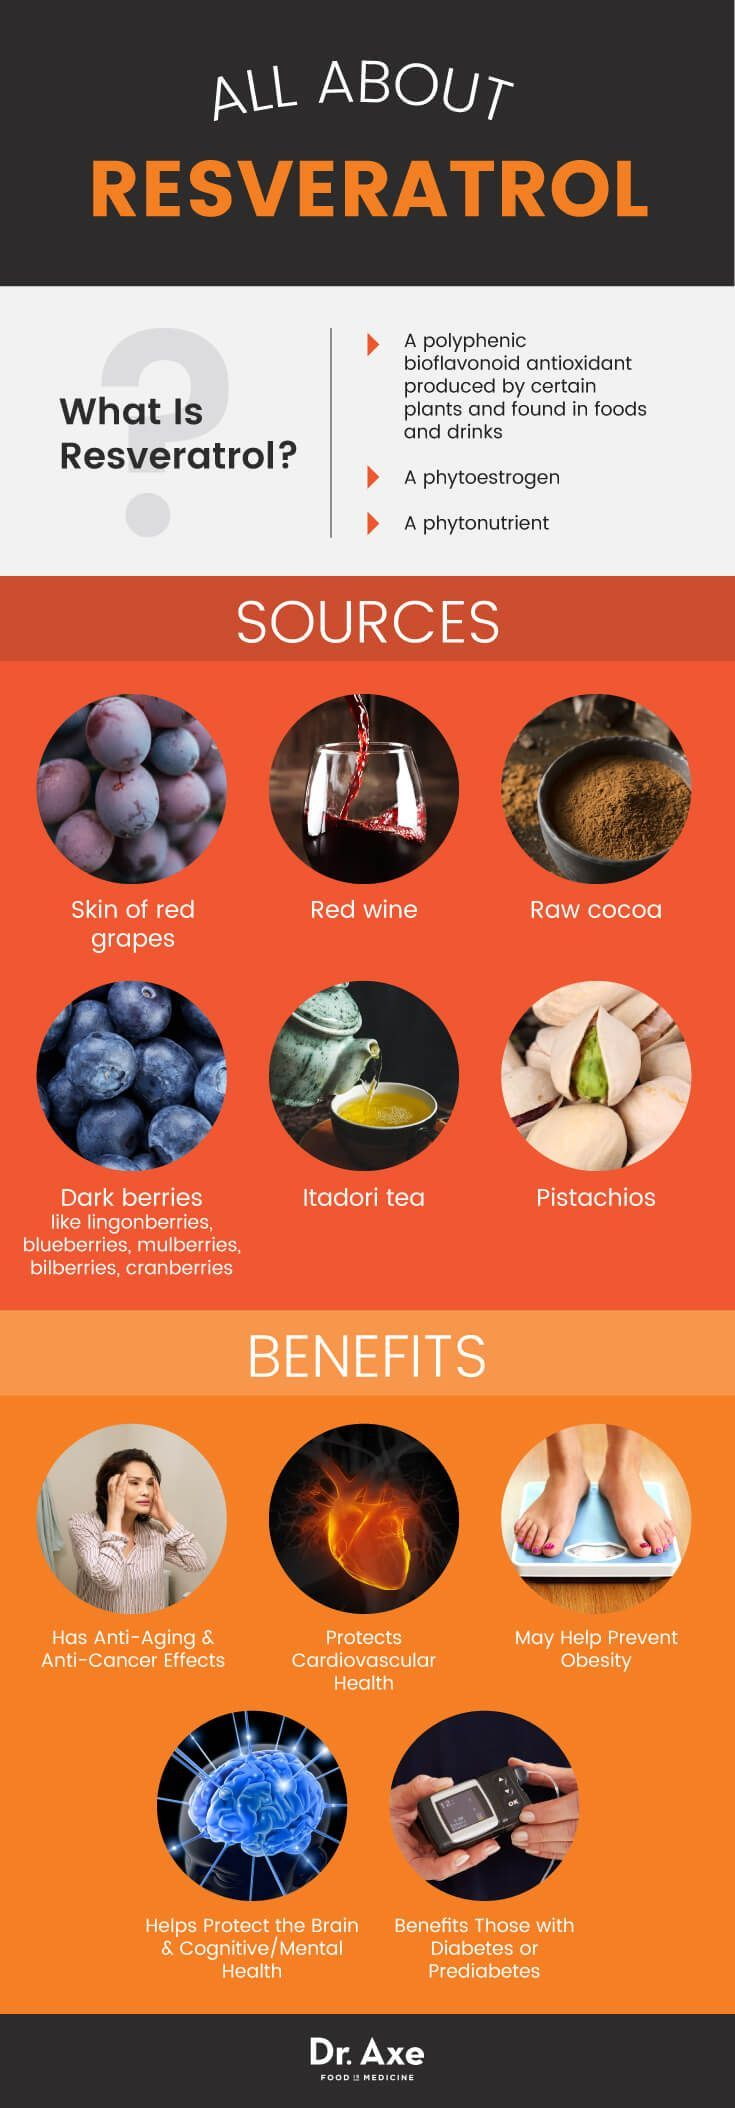 #Infographic All About Resveratrol - latest research on this antioxidant